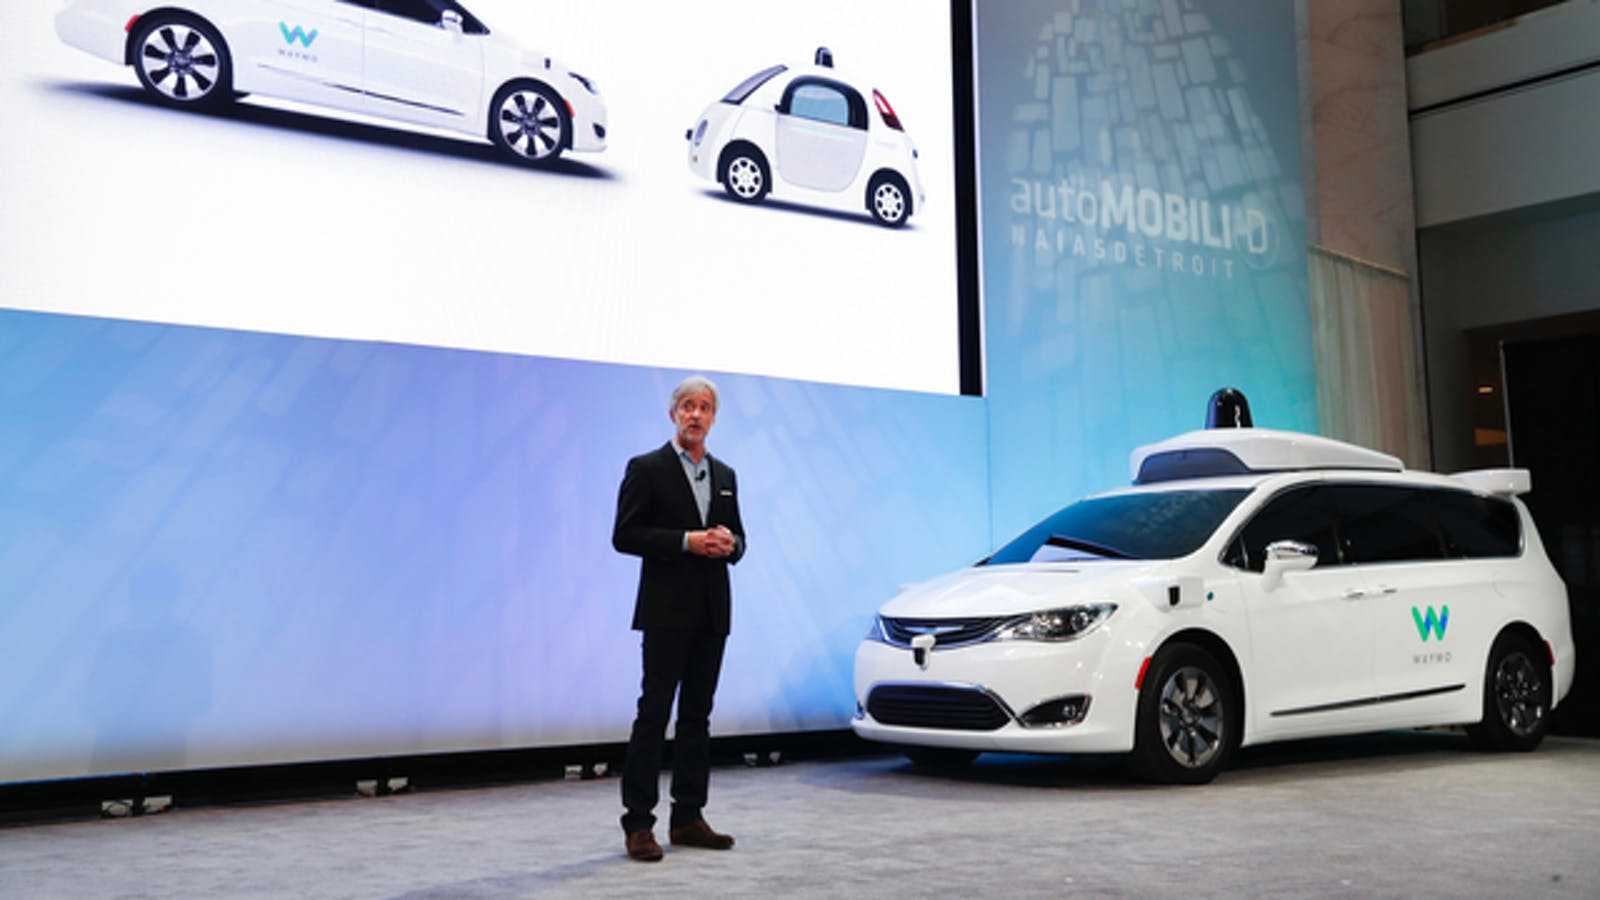 Waymo CEO John Krafcik unveiling the Chrysler Pacifica outfitted with Waymo technology at the auto show in Detroit in January. Photo by AP.